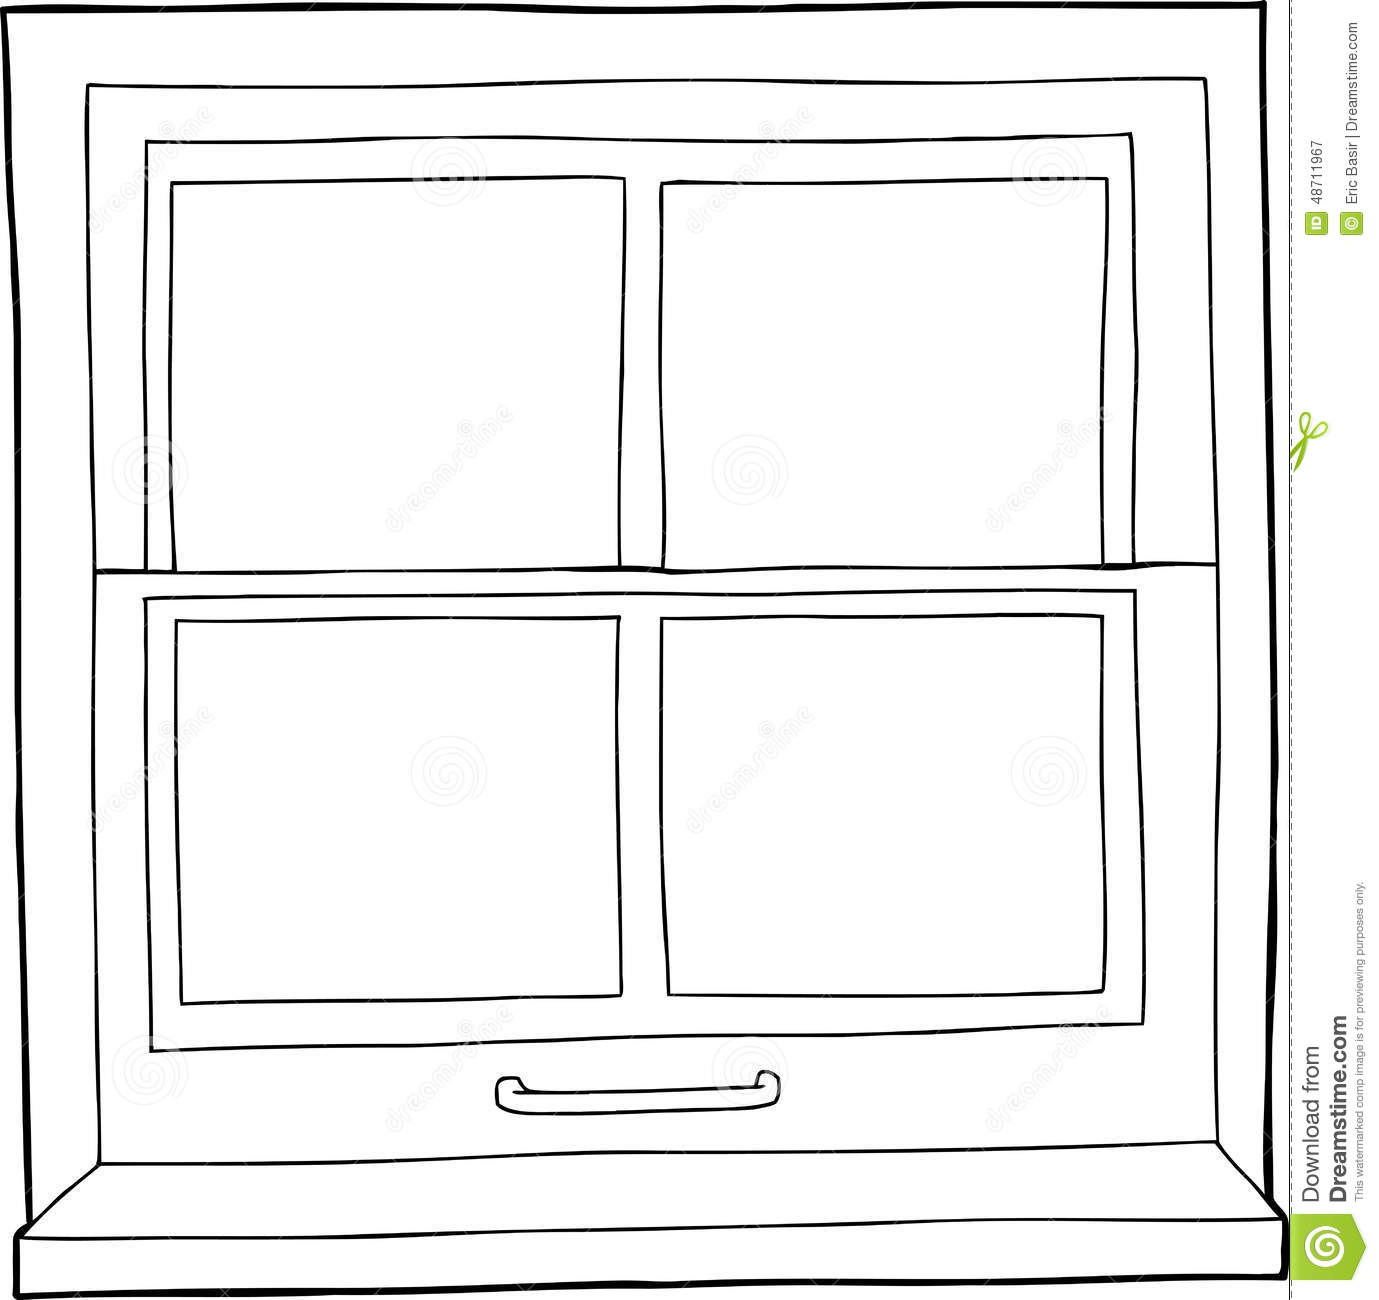 Square window clipart black and white 4 » Clipart Station.